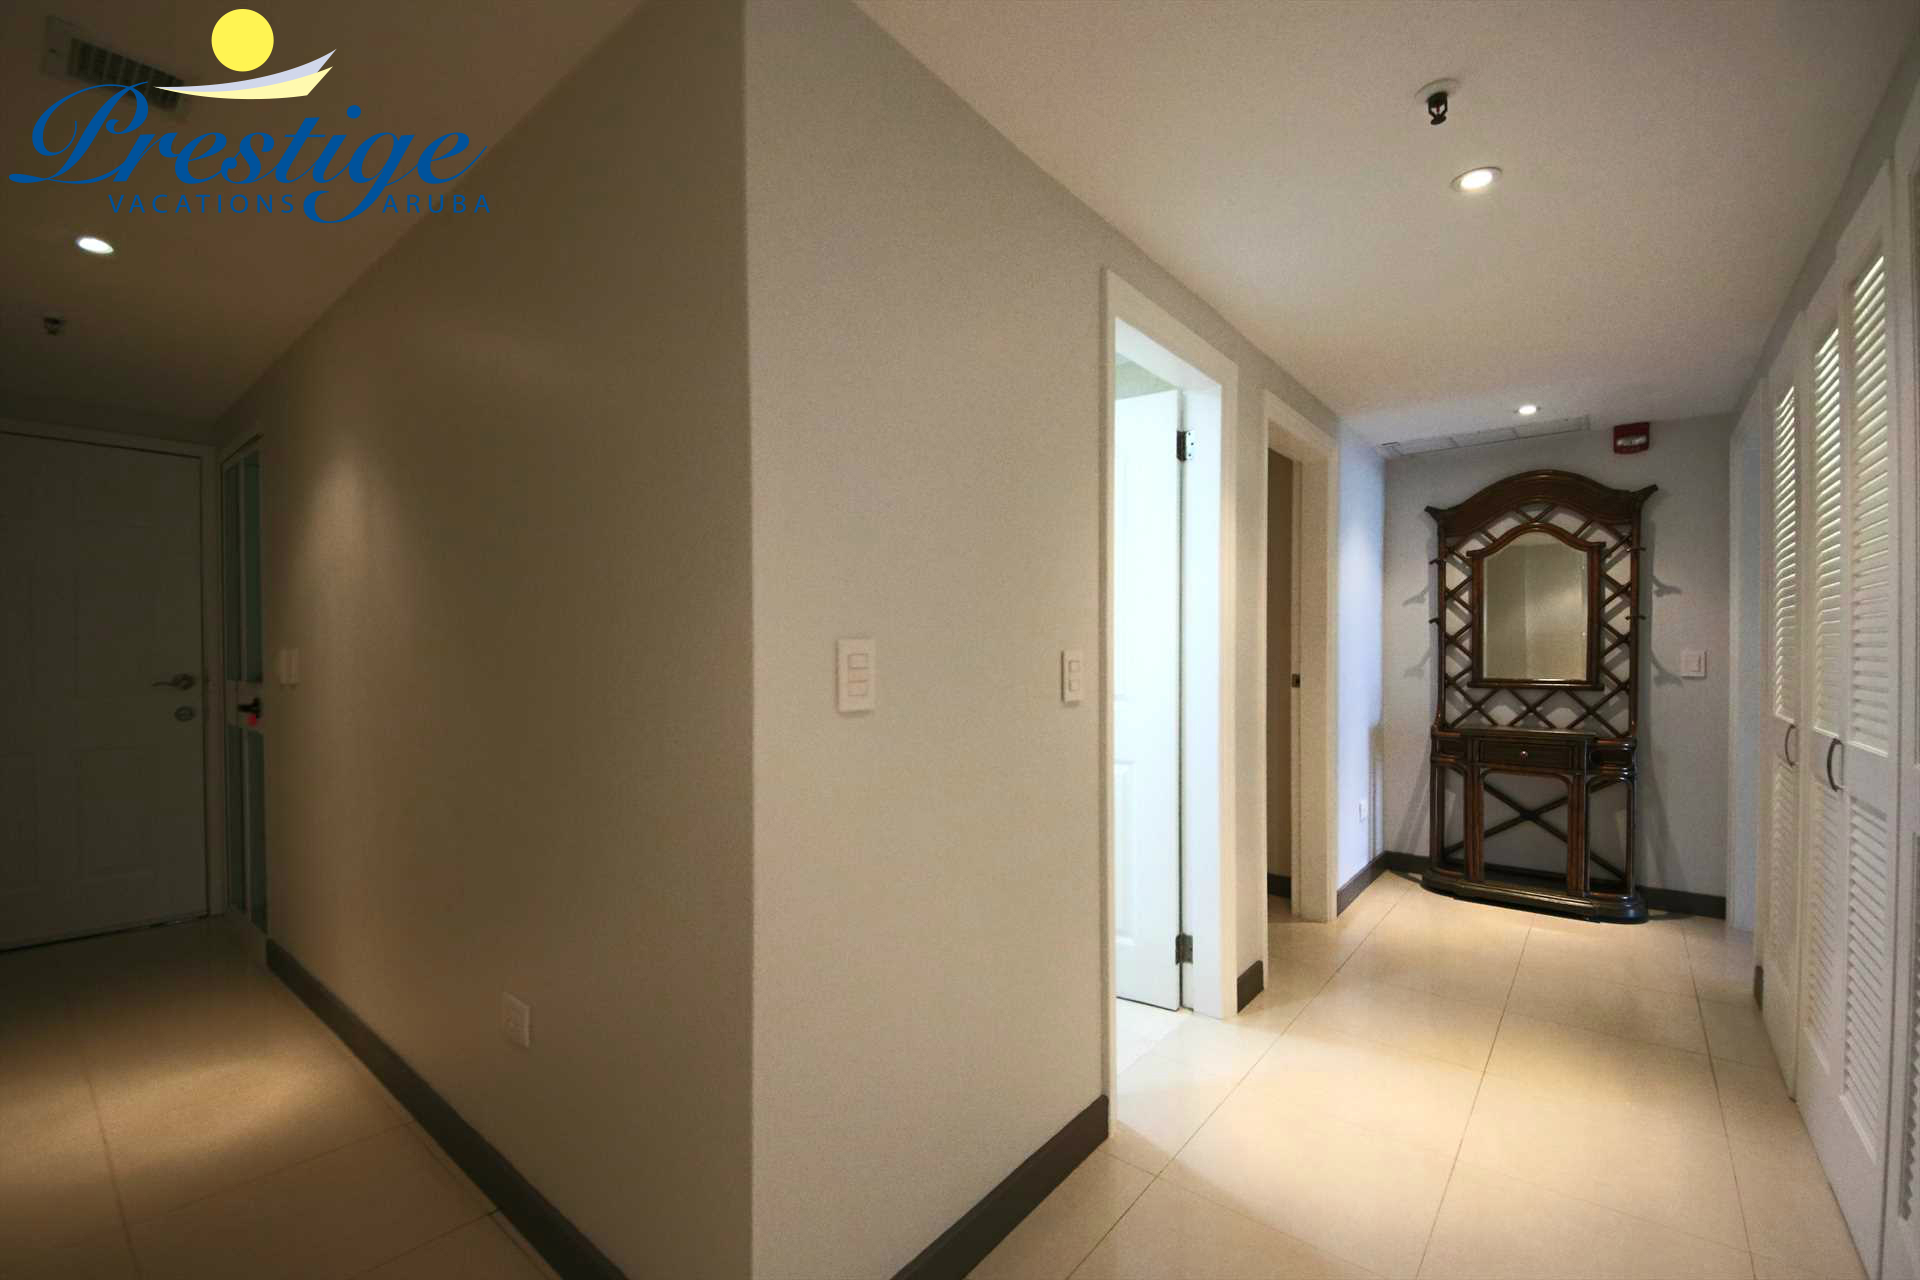 The hallway that lens access to the bedrooms and laundry facilities